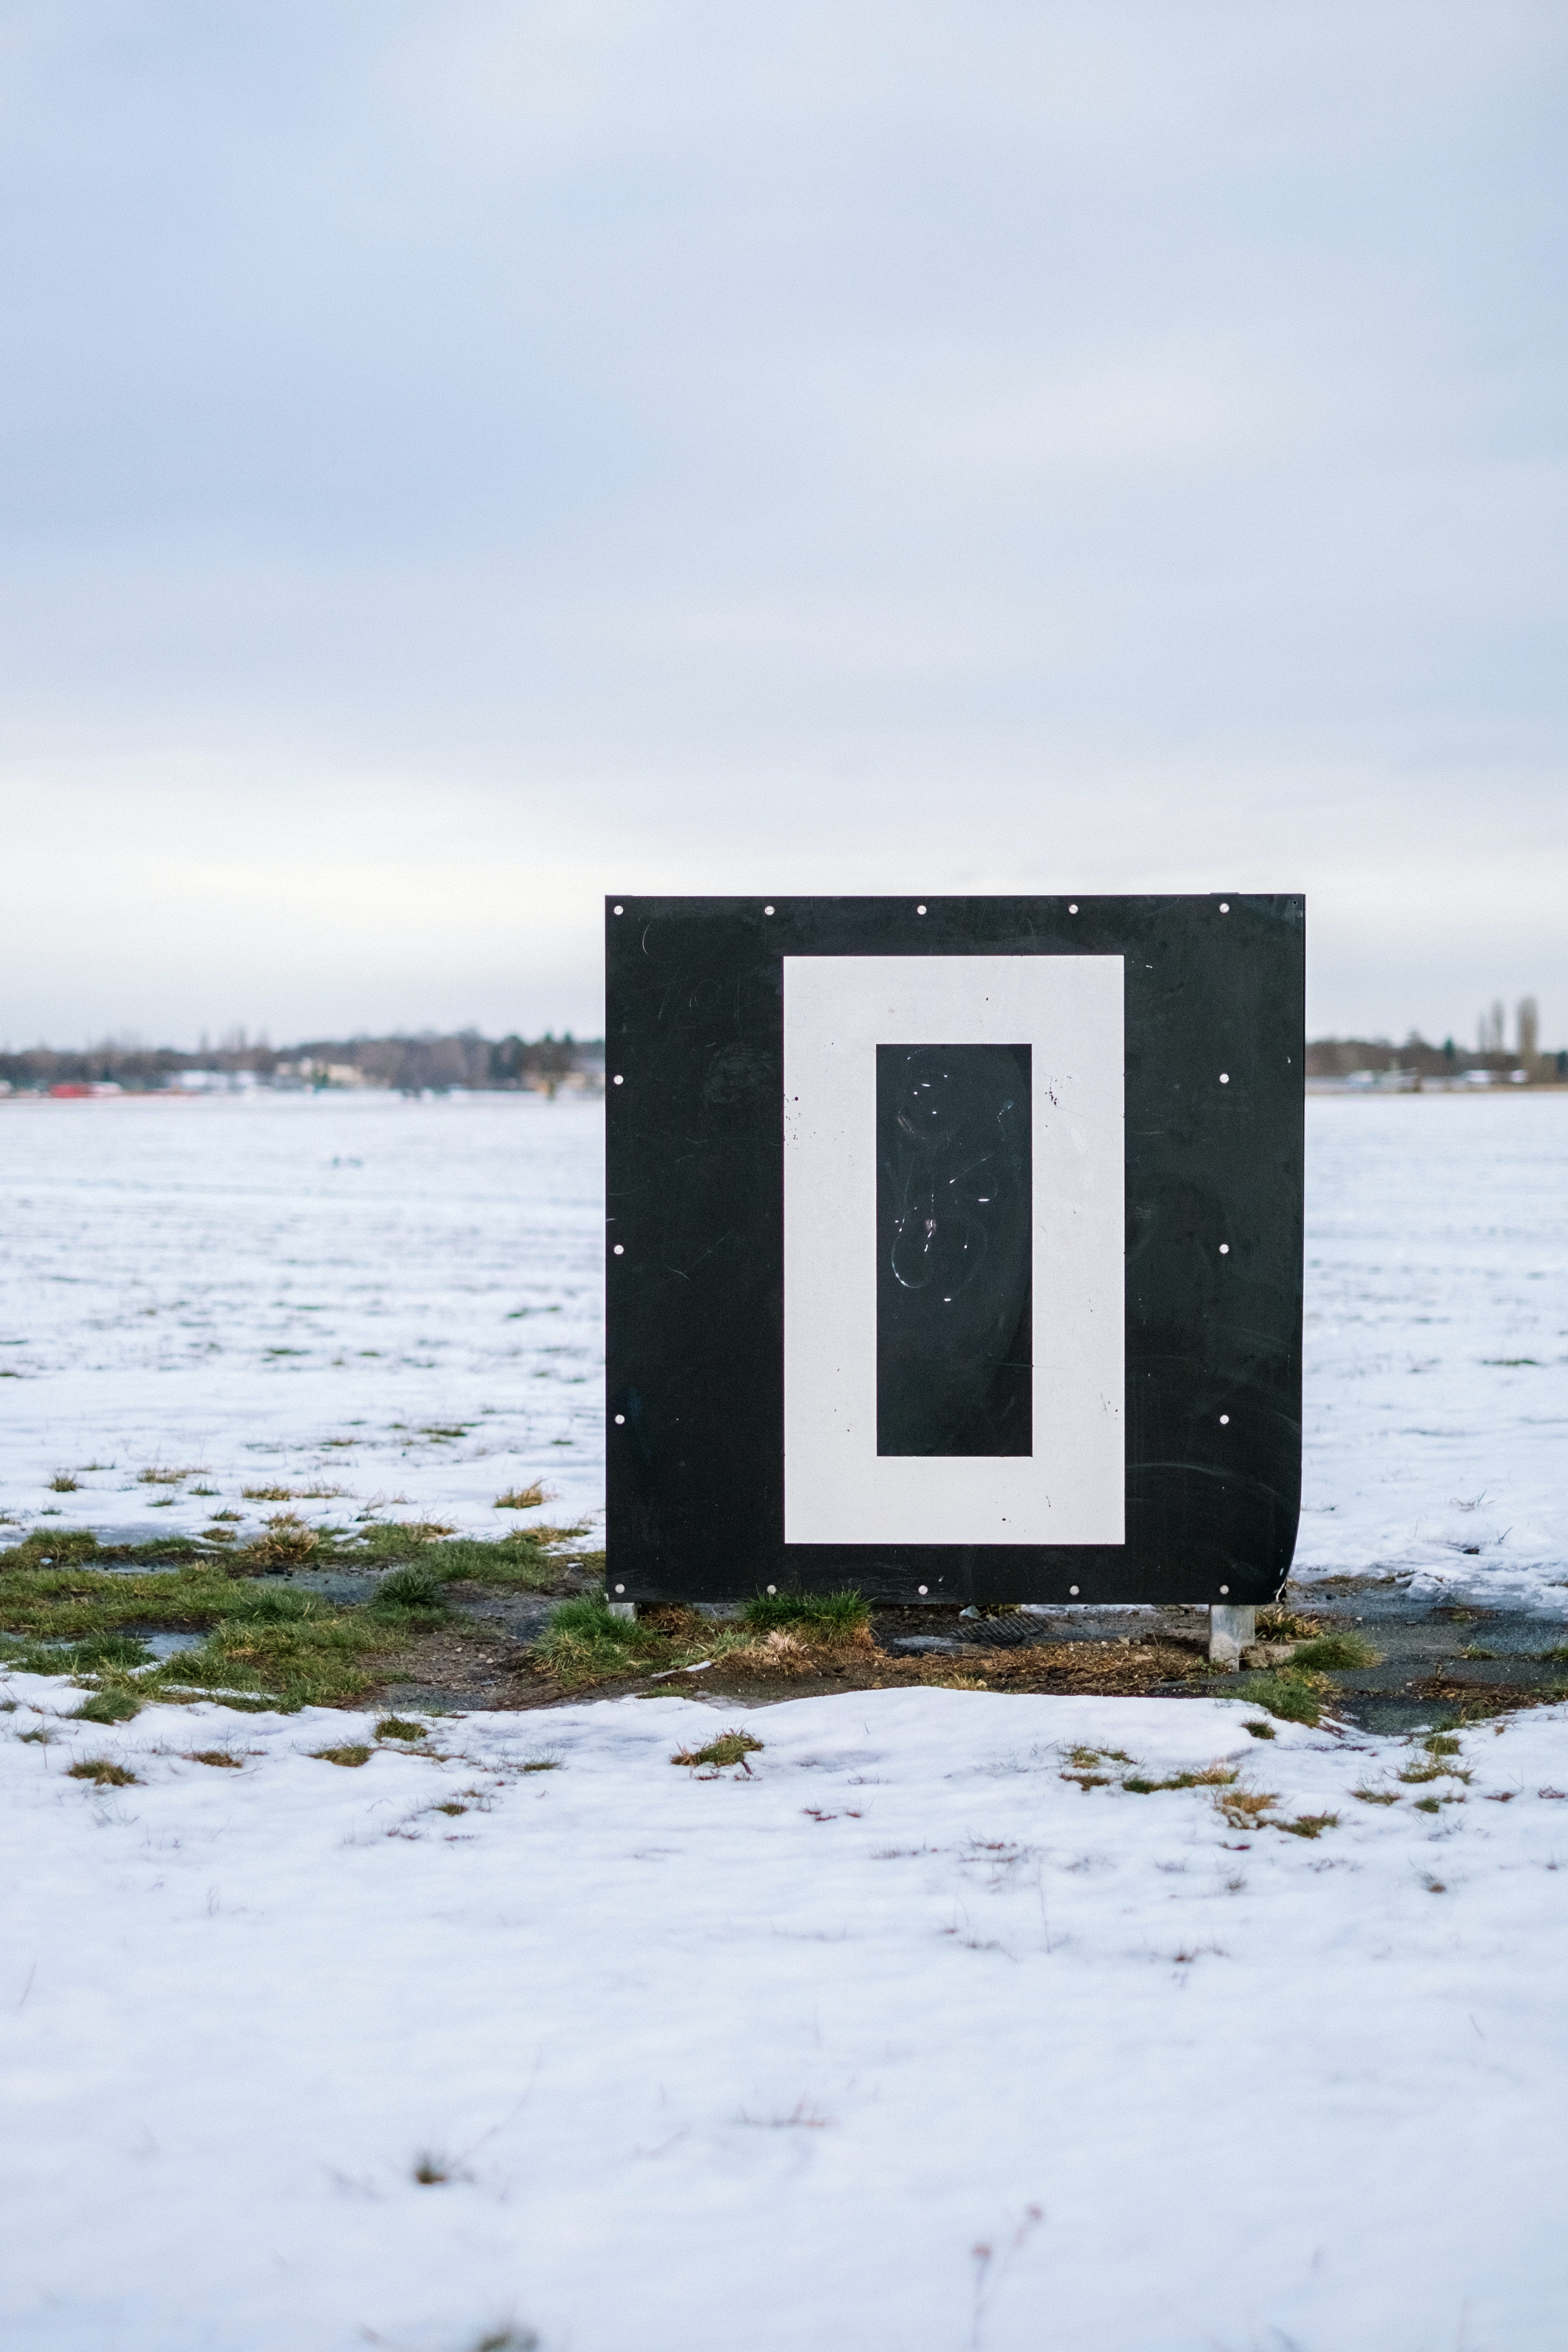 photography of white and black container on field